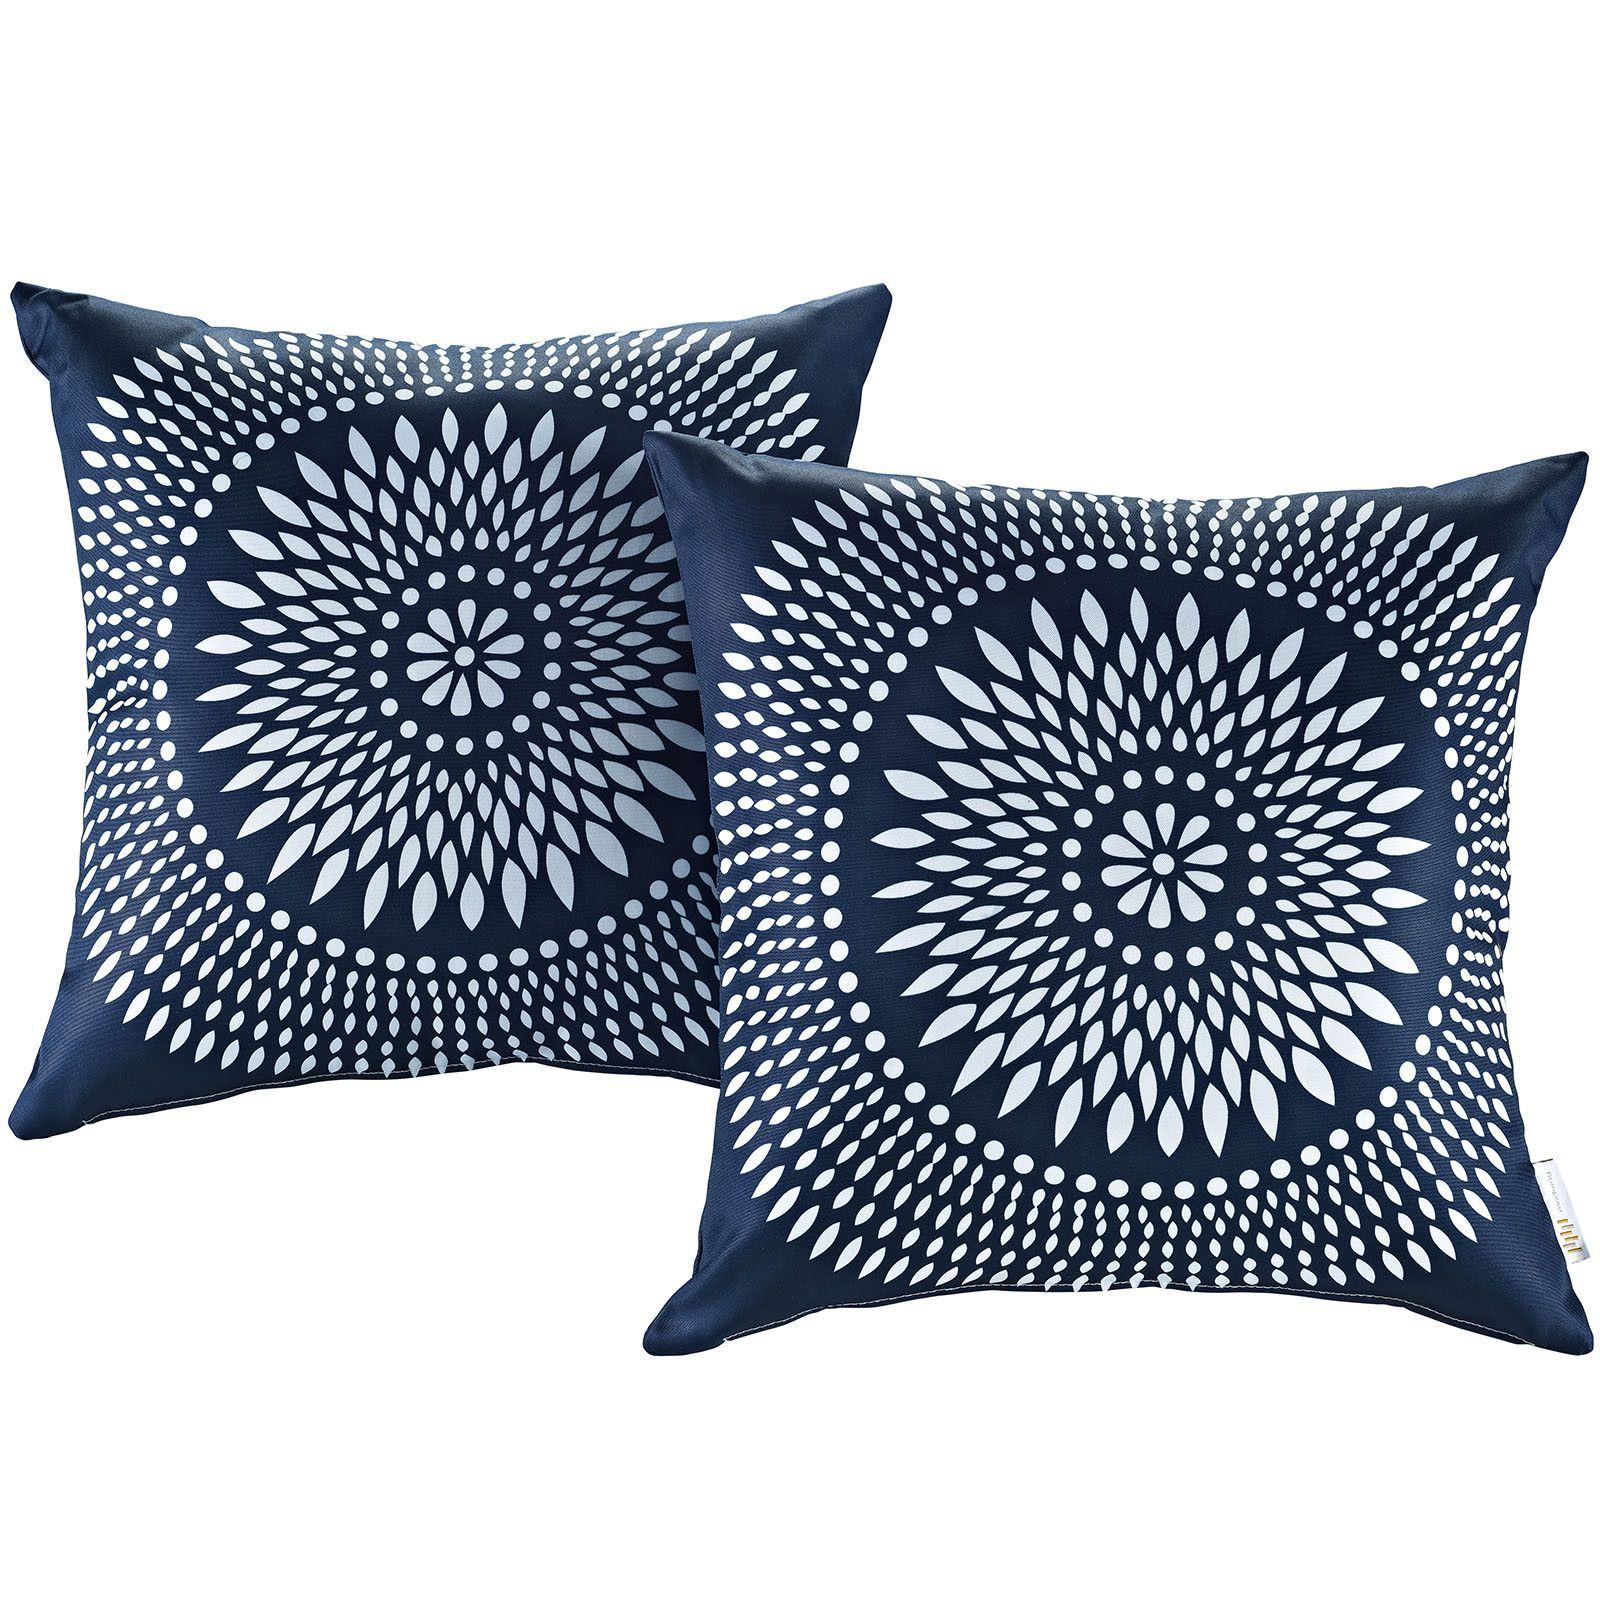 Buy Modway Two Piece Outdoor Patio Pillow Set at ModelDeco for